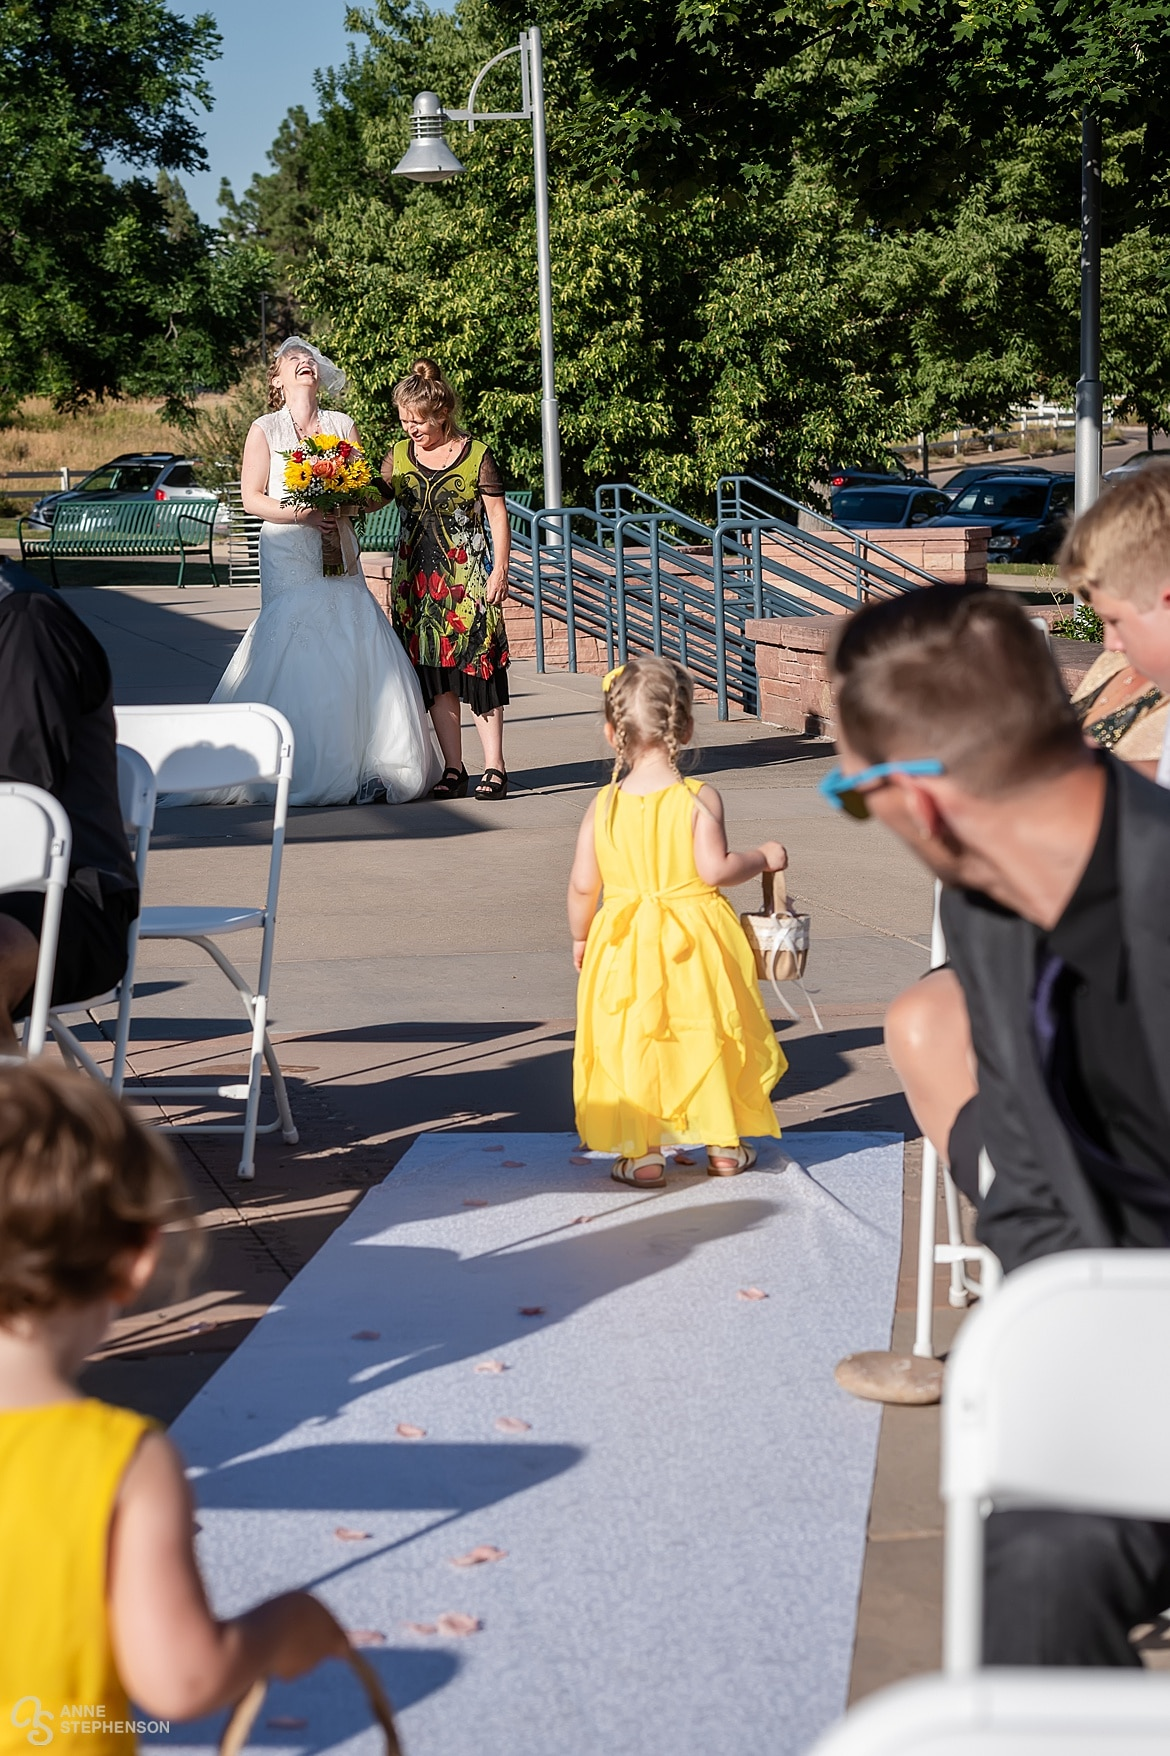 The bride laughs when seeing the flower girls back down the aisle dropping flower petals.